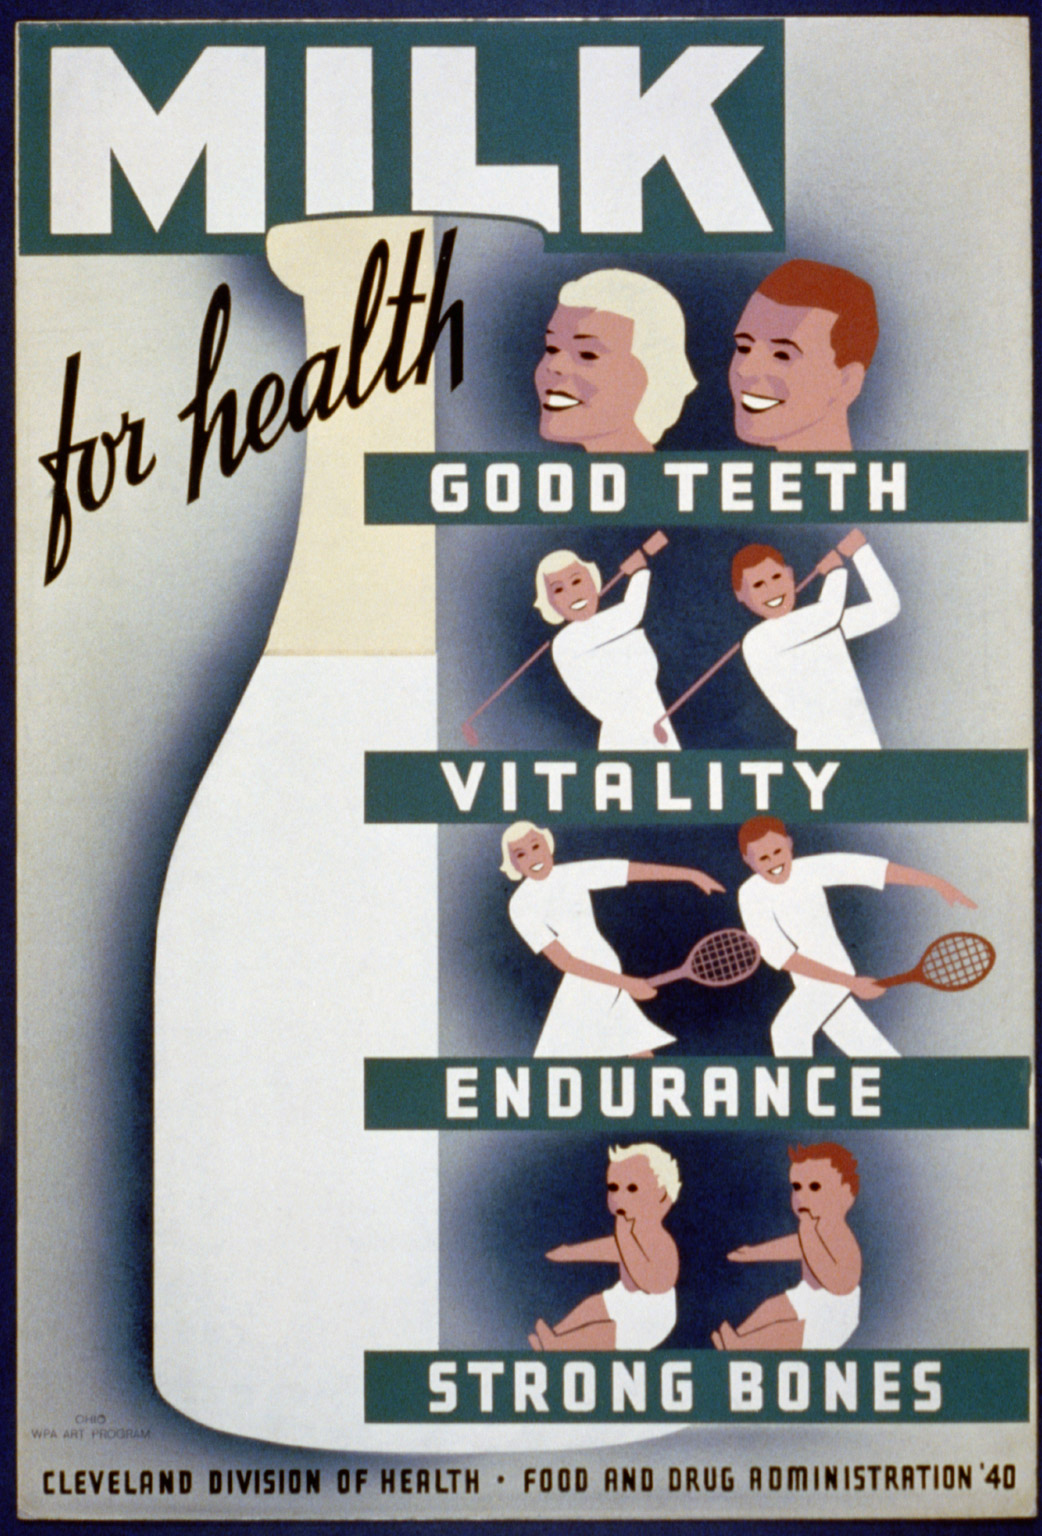 Poster for Cleveland Division of Health promoting milk, showing a large bottle of milk next to couples smiling, playing golf, tennis, and two babies. Created in 1940.